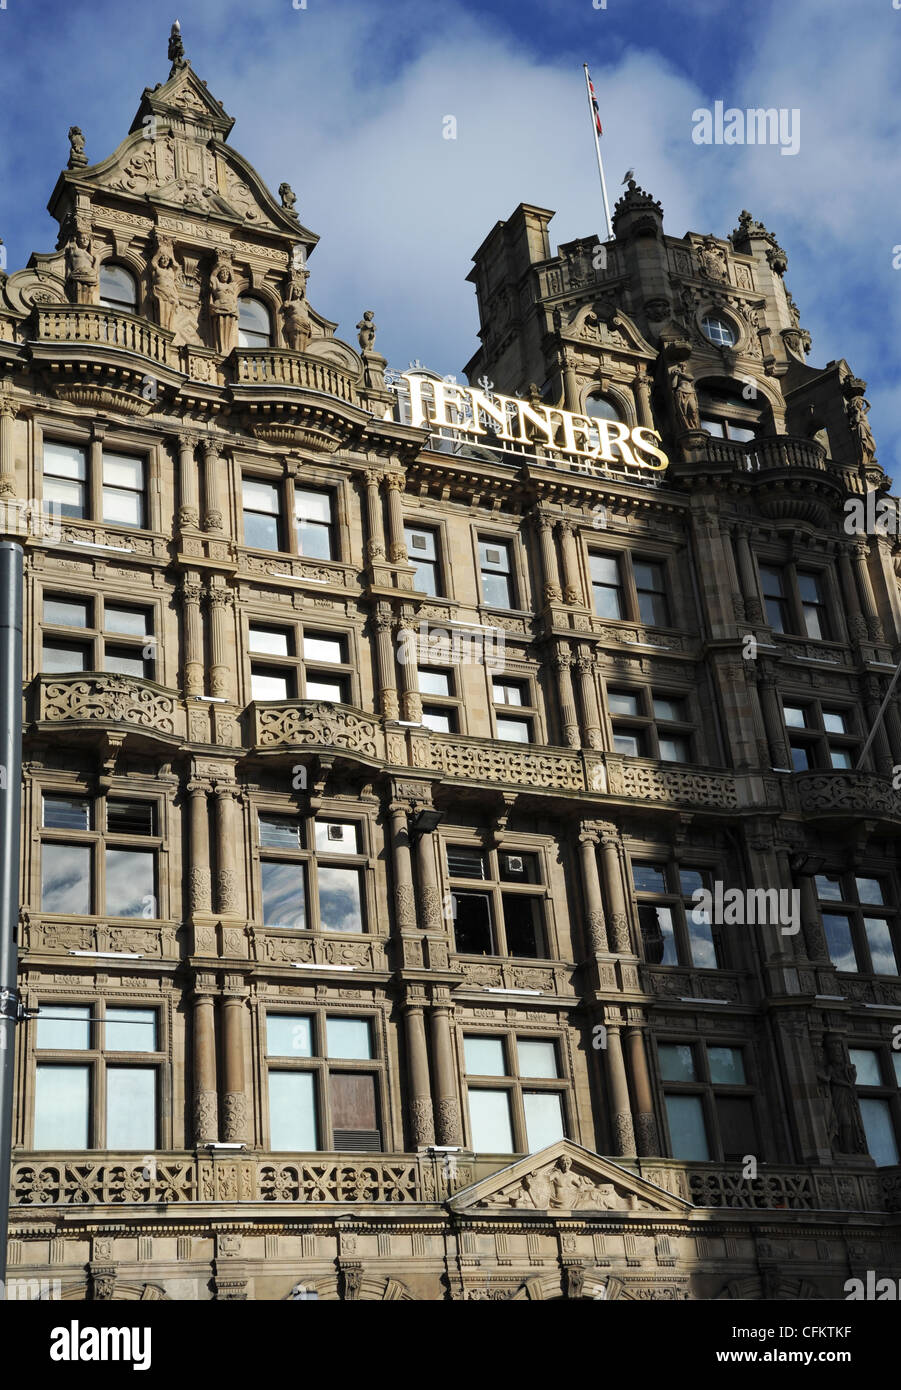 Jenners Department Store, Edinburgh, Scotland. Opened in 1838, it is known as the Harrods of the north. - Stock Image